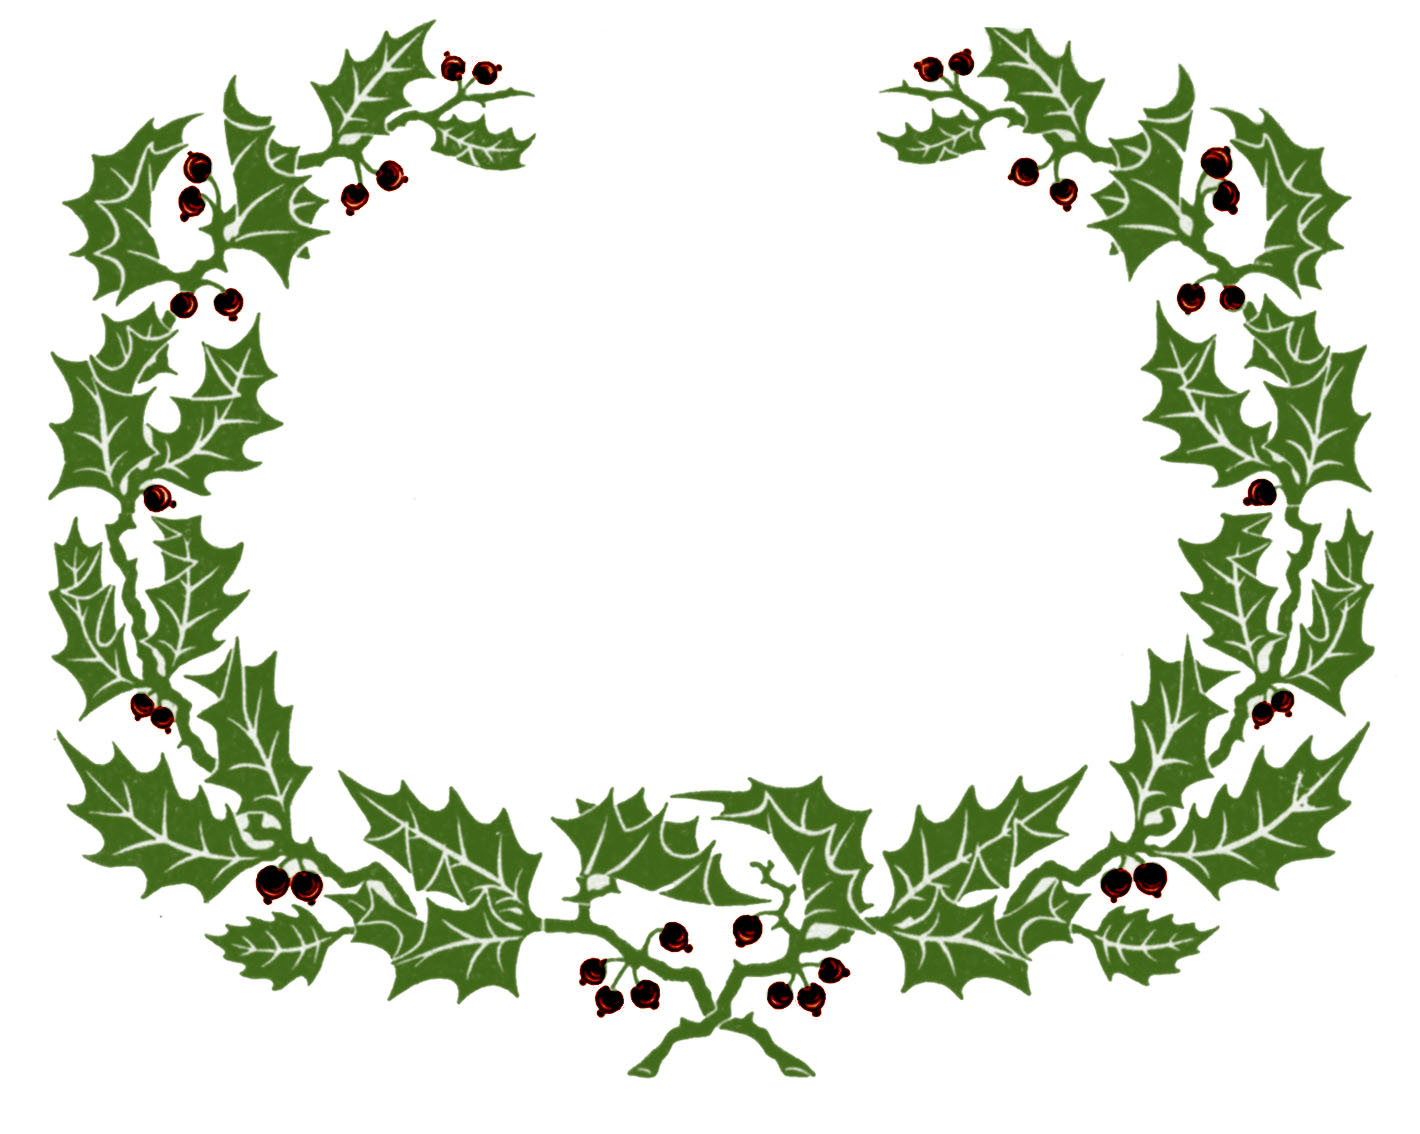 Advent border clipart image stock Free Advent Border Cliparts, Download Free Clip Art, Free Clip Art ... image stock